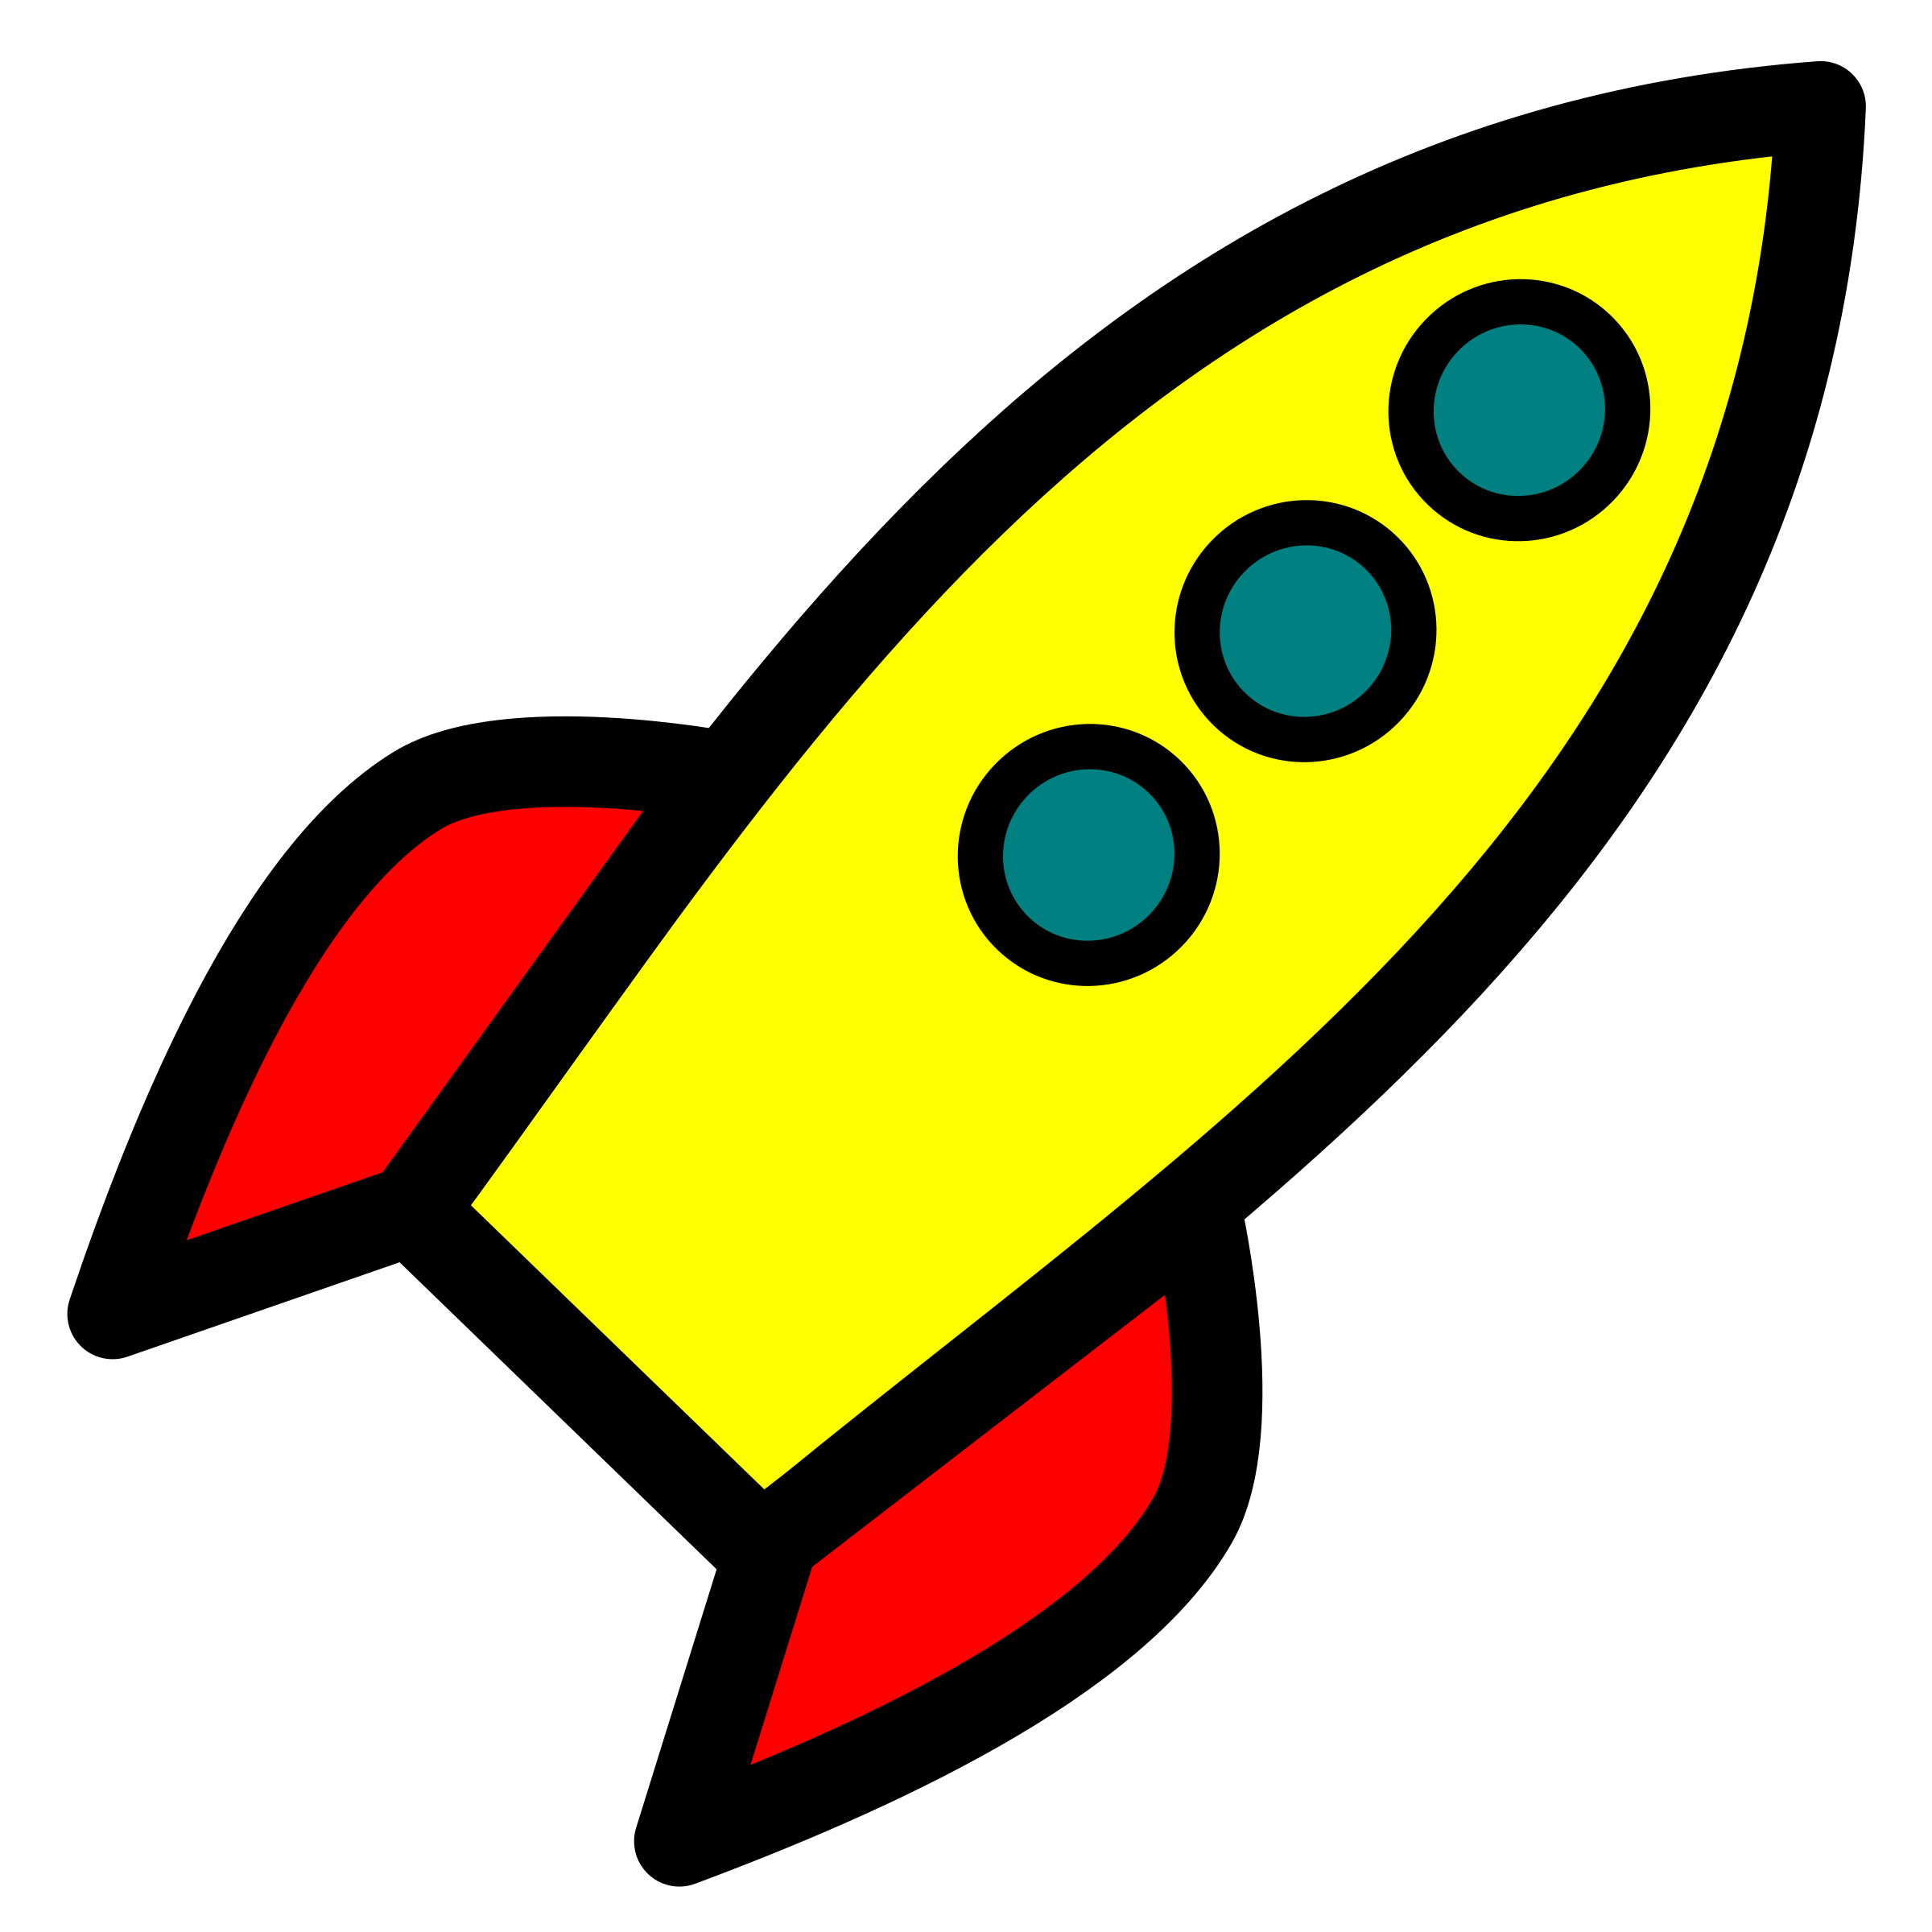 spaceship svg bitmap